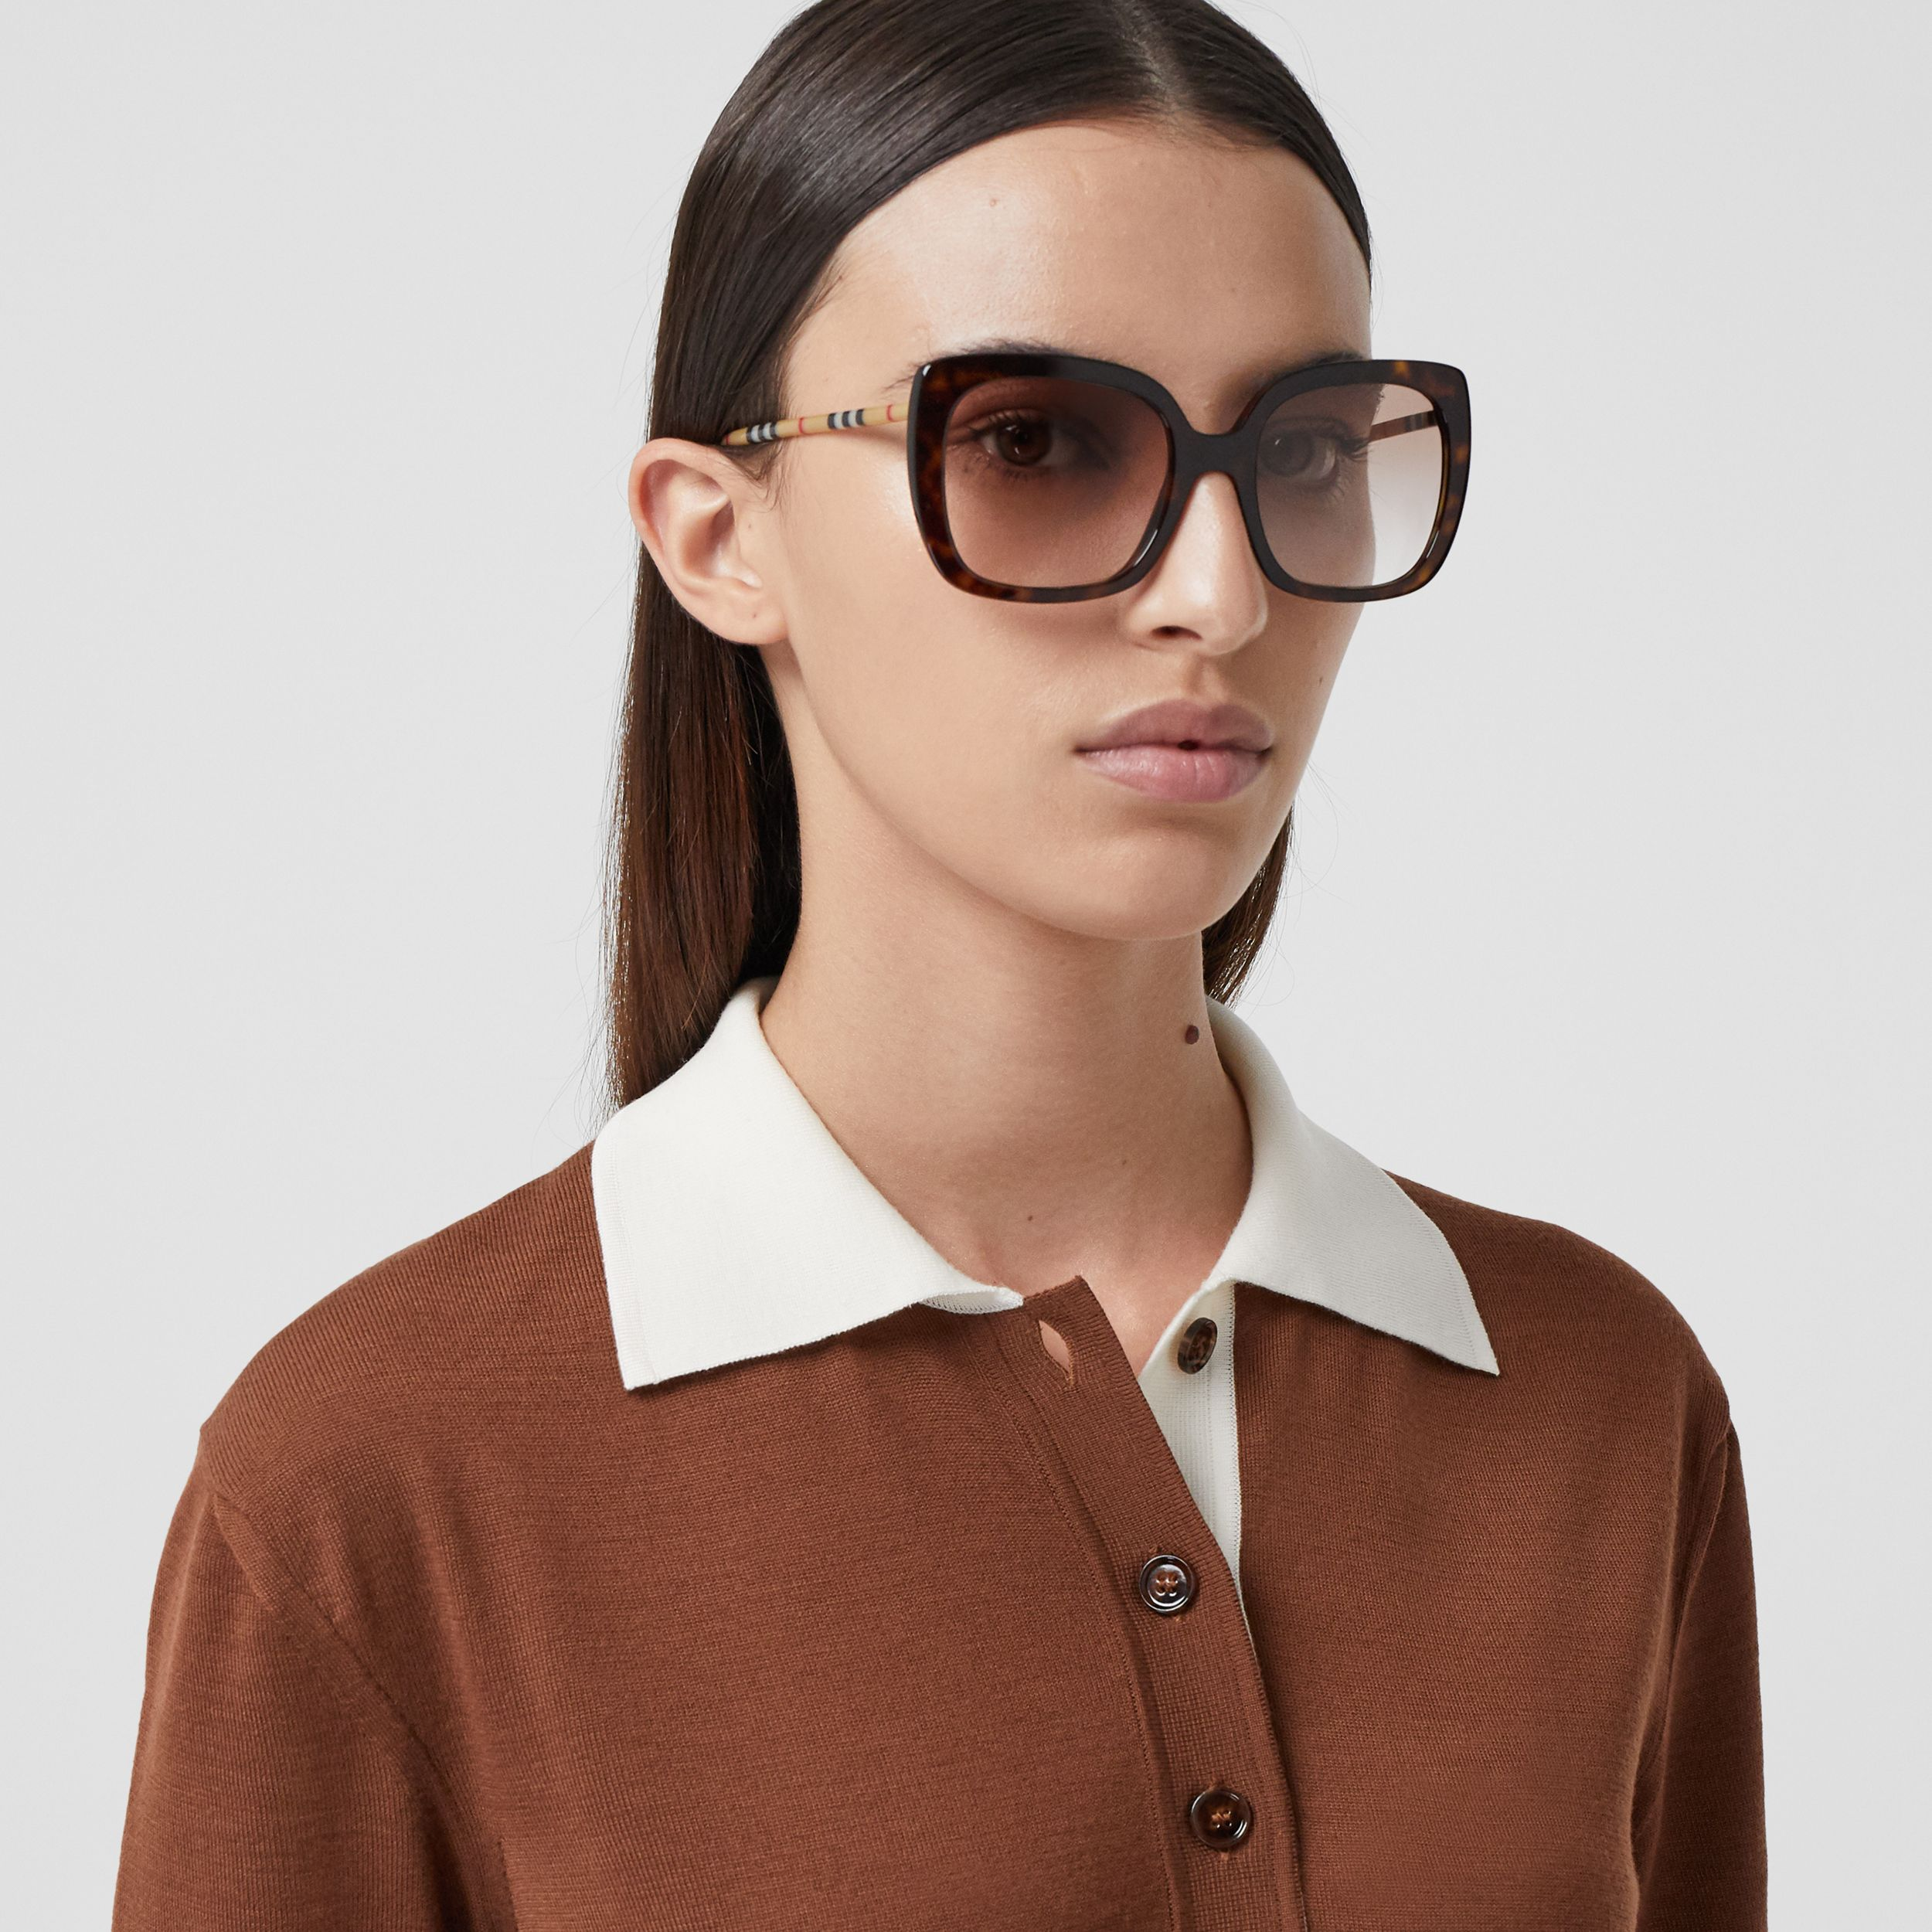 Oversized Square Frame Sunglasses in Tortoiseshell - Women | Burberry - 3